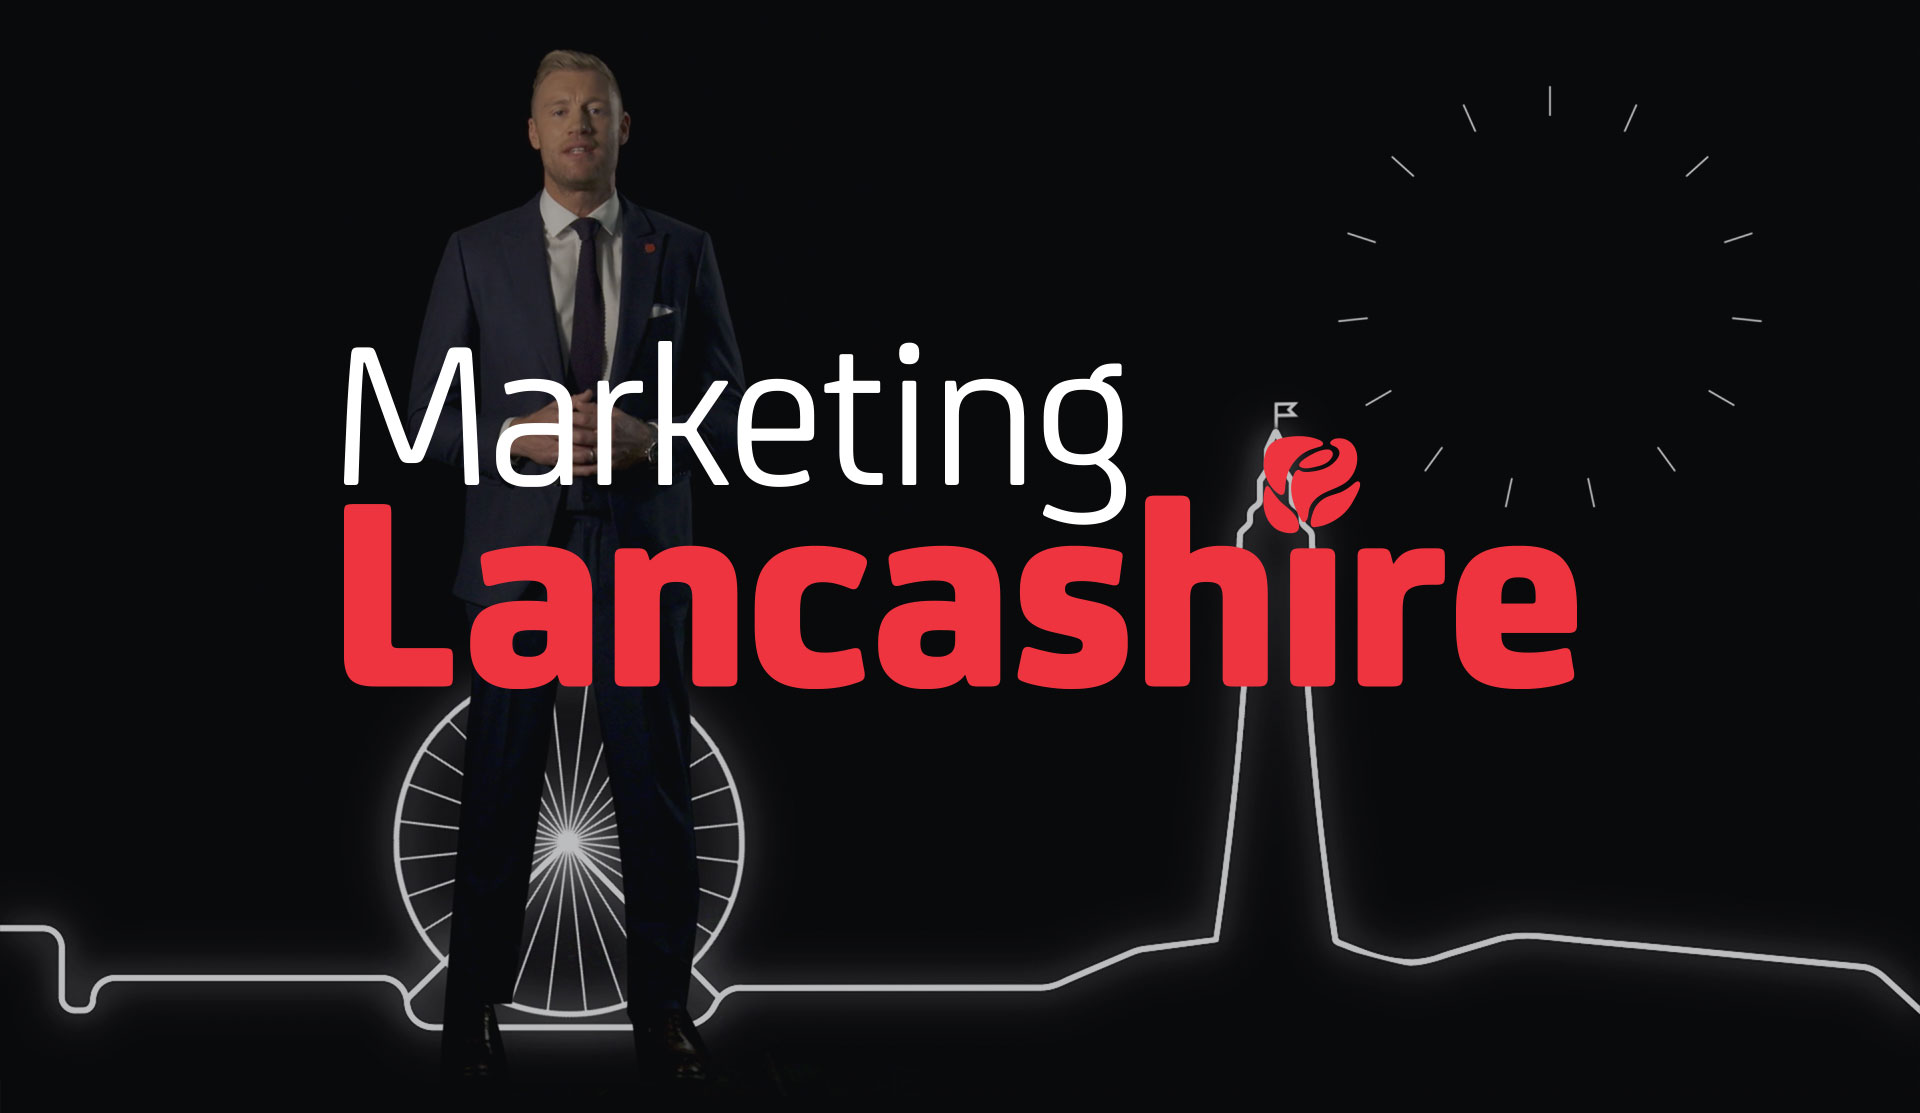 Marketing Lancashire Portfolio thumbnail